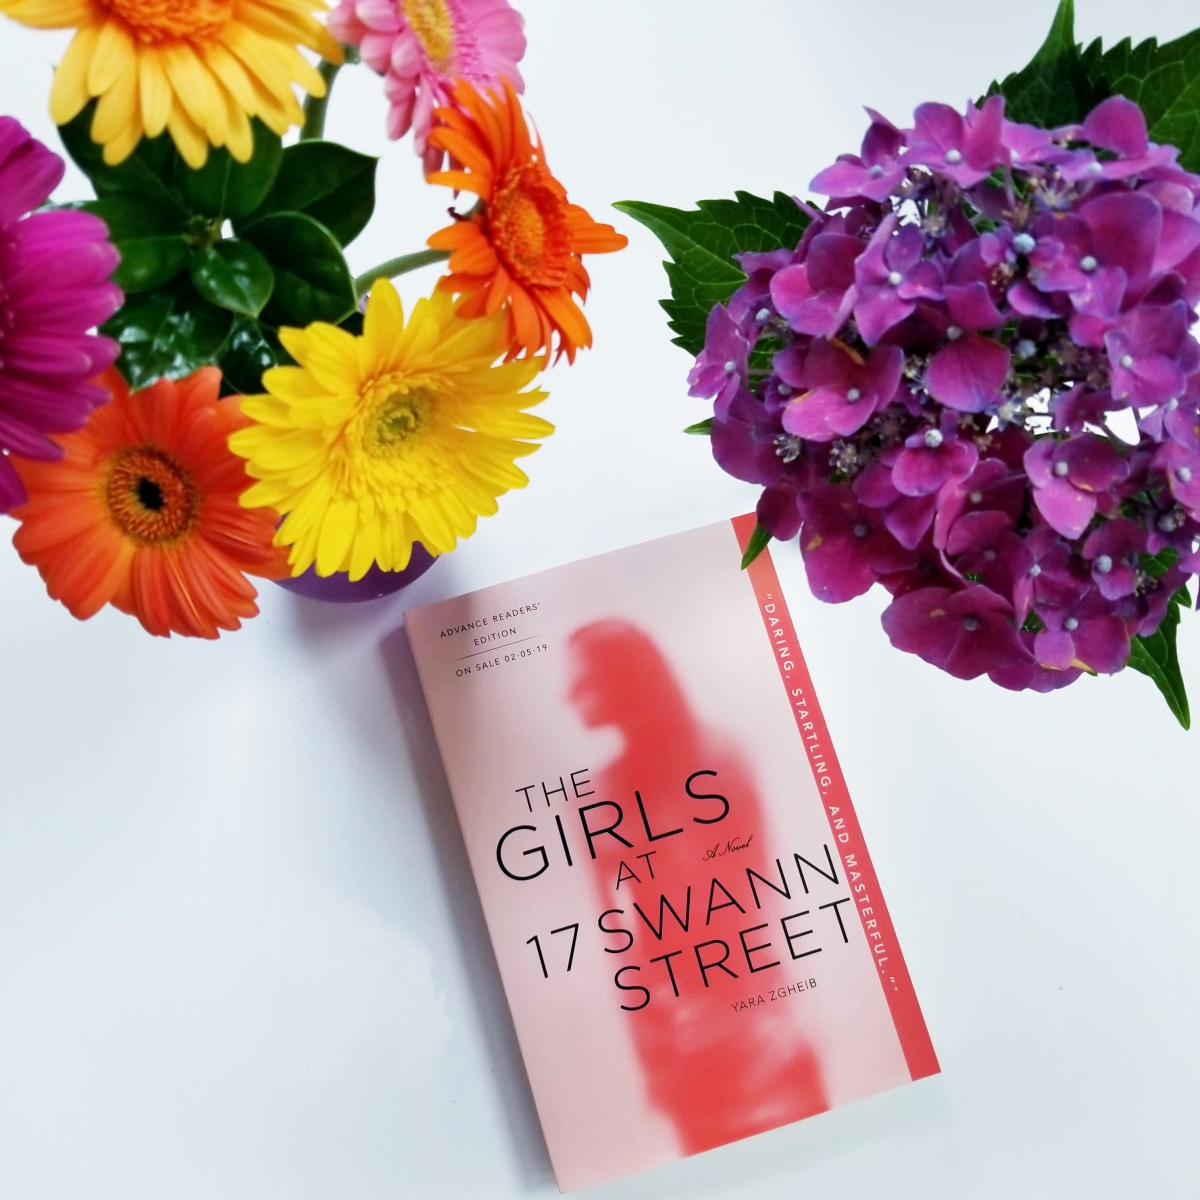 First Line Fridays: The Girls at 17 Swann Street by Yara Gheib #firstlinefridays #tarheelreader #thrswann #yarazgheib @stmartinspress #thegirlsat17swannstreet